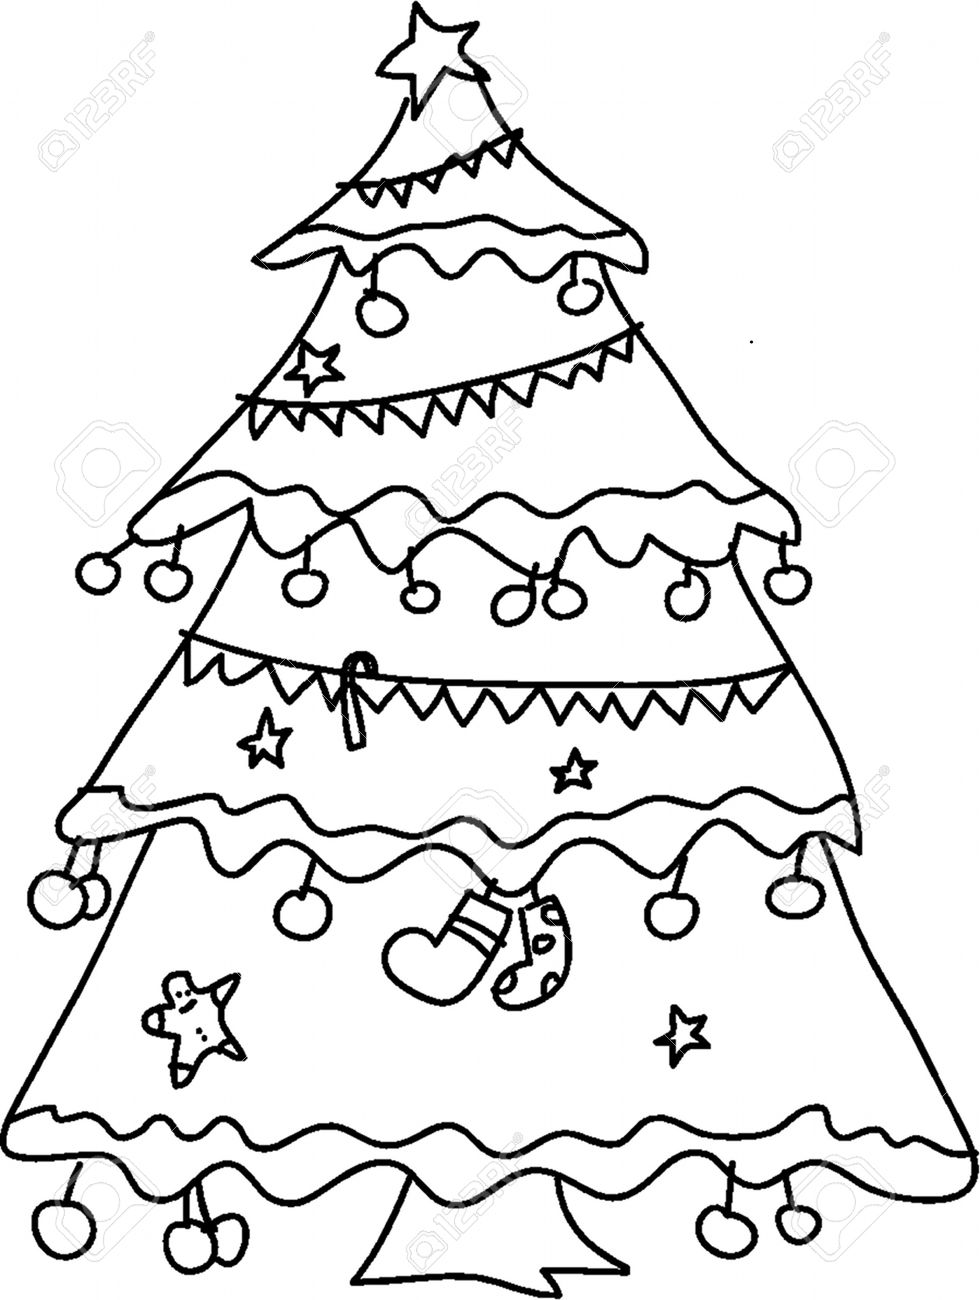 Christmas Tree Hand Sketch Royalty Free Cliparts Vectors And Stock